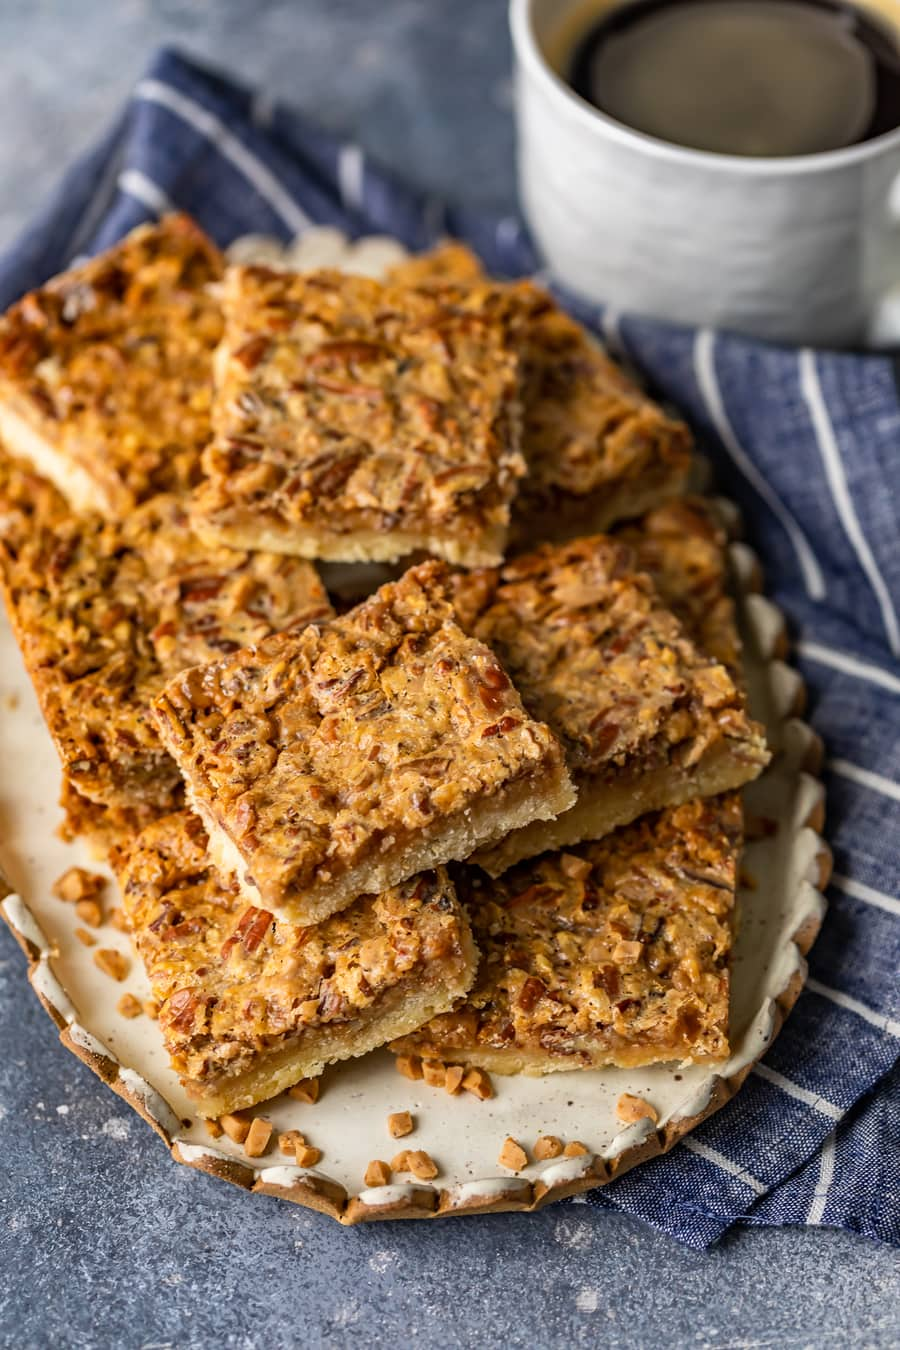 a plate of pecan bars sitting on a blue and white striped dish towel